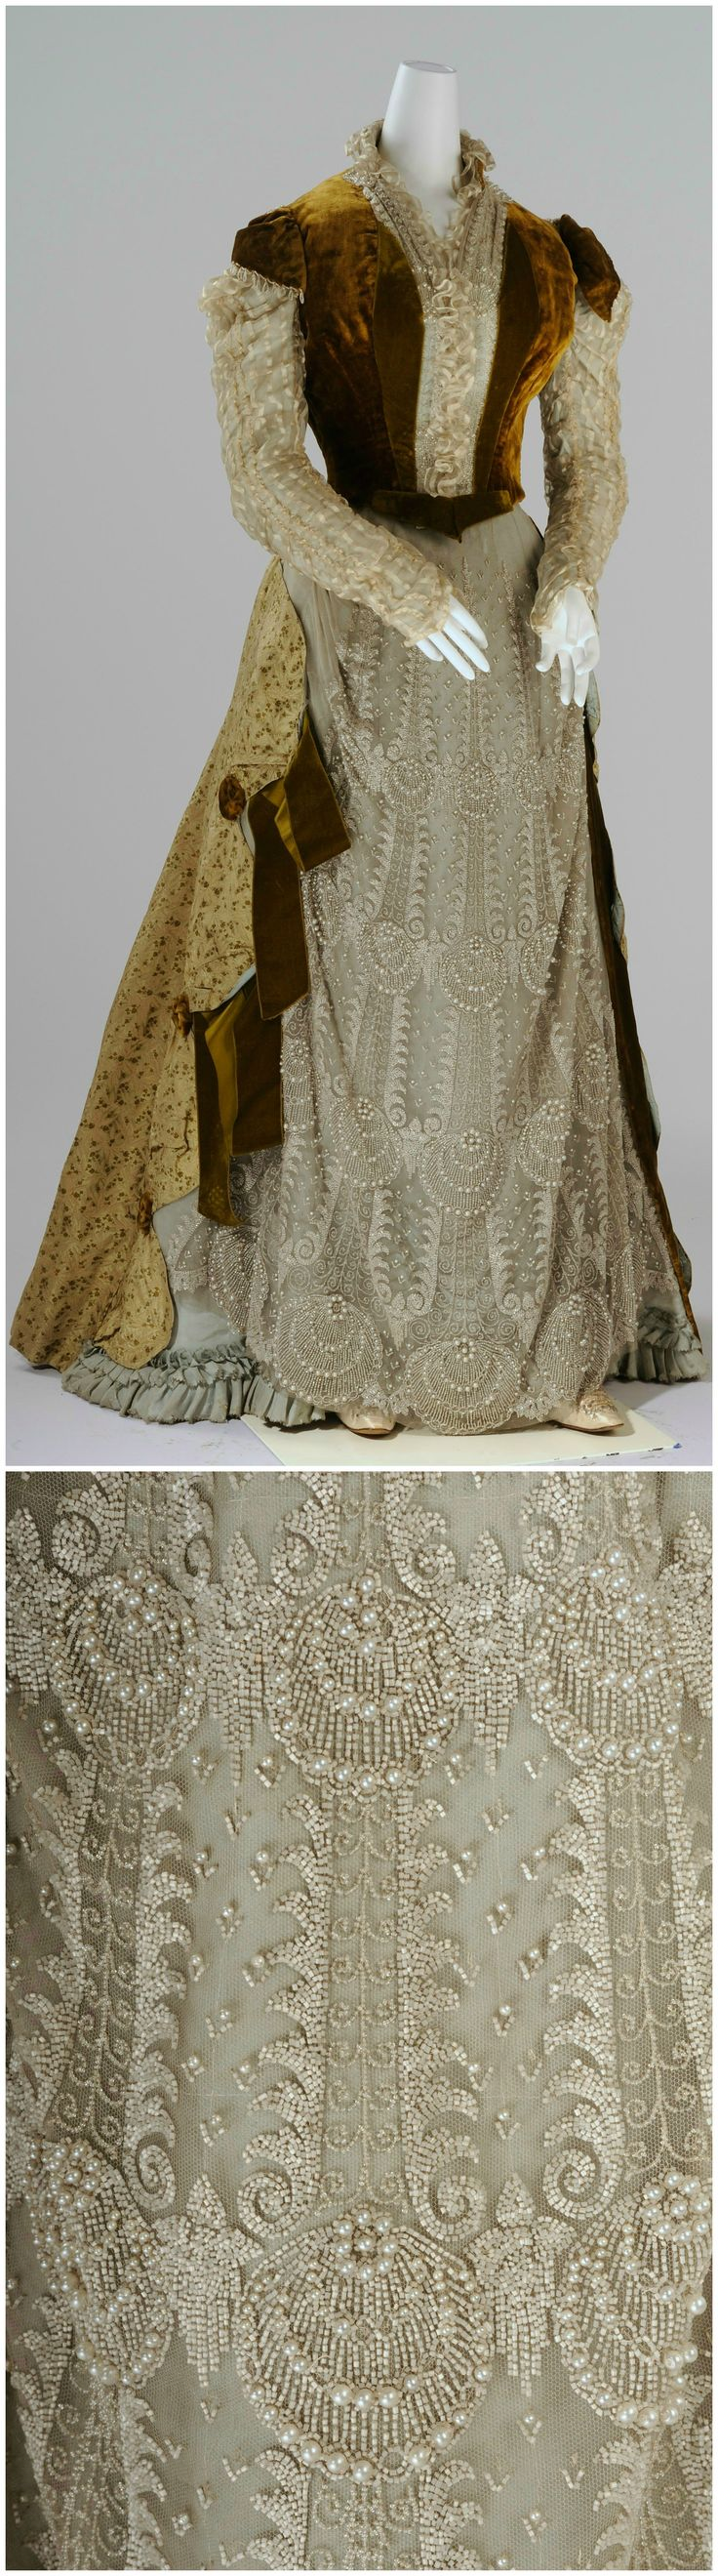 "Court dress in ""Makart"" style, by Mme M. Frippel, 1886. Bodice of mustard silk velvet, centre front and sleeves of light blue faille covered in unbleached silk rayon, stand up collar. Skirt front section of light blue faille with hem ruffle and overskirt of unbleached silk tulle, hand-embroidered with glass beads, side sections of silk brocade and mustard coloured silk velvet, skirt rear section of mustard coloured silk velvet. Wien Museum (photos: Christin Losta), via Google Cultural…"